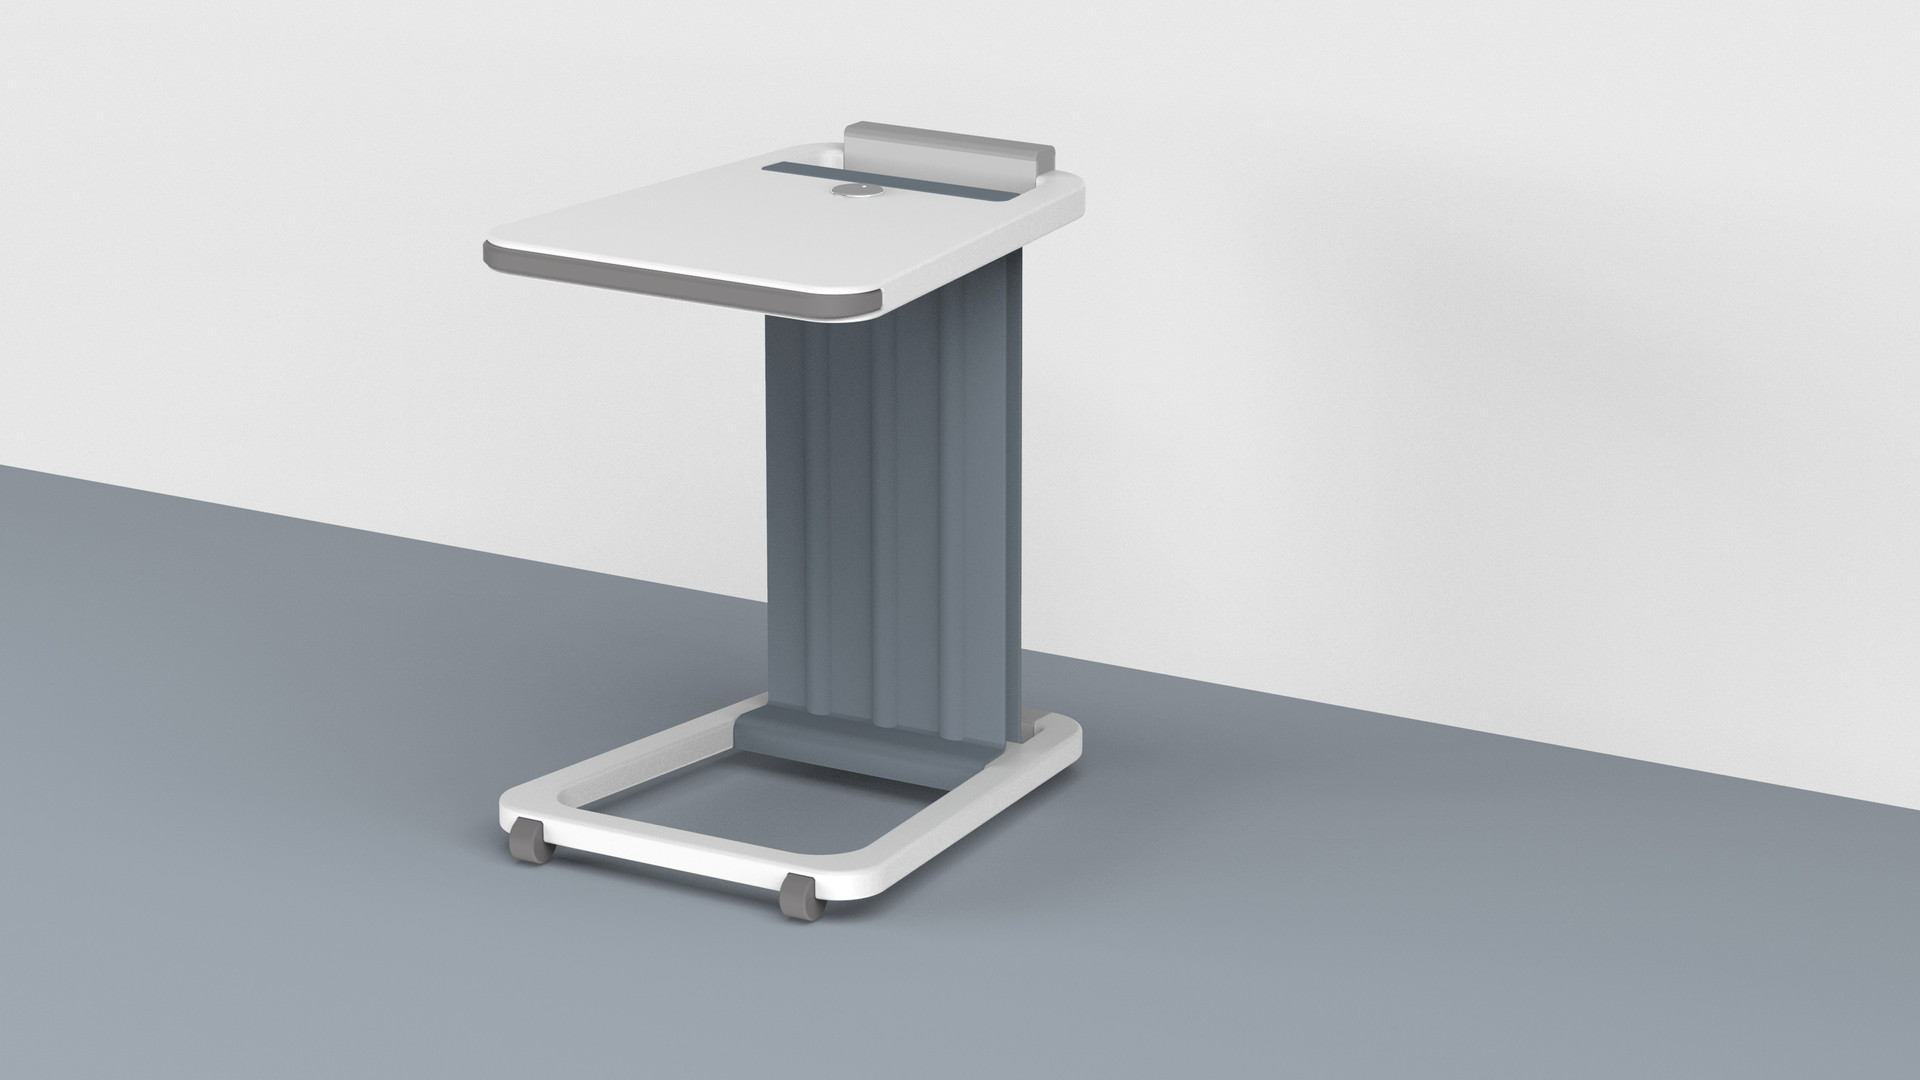 keyshot all for imeges-radiator stand 3.